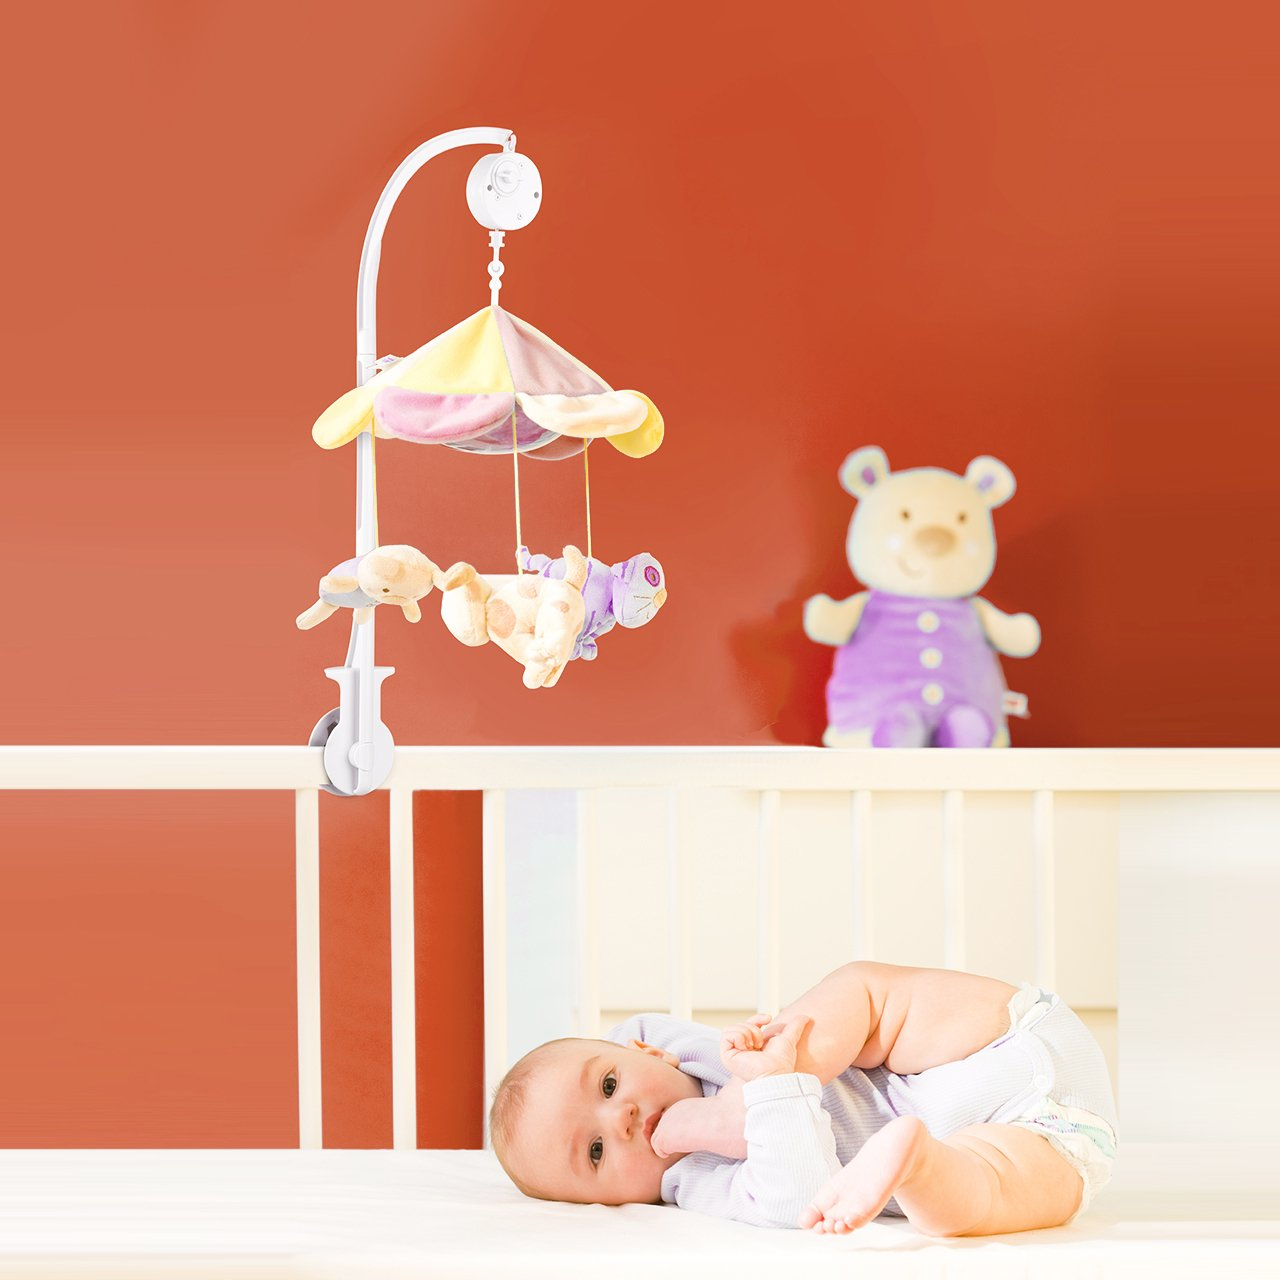 Baby bed name in english - Amazon Com Victsing 34 Inch Long Extended Baby Crib Mobile Music Box Holder Arm Bracket Nut Screw Bed Bell Without Toys Baby